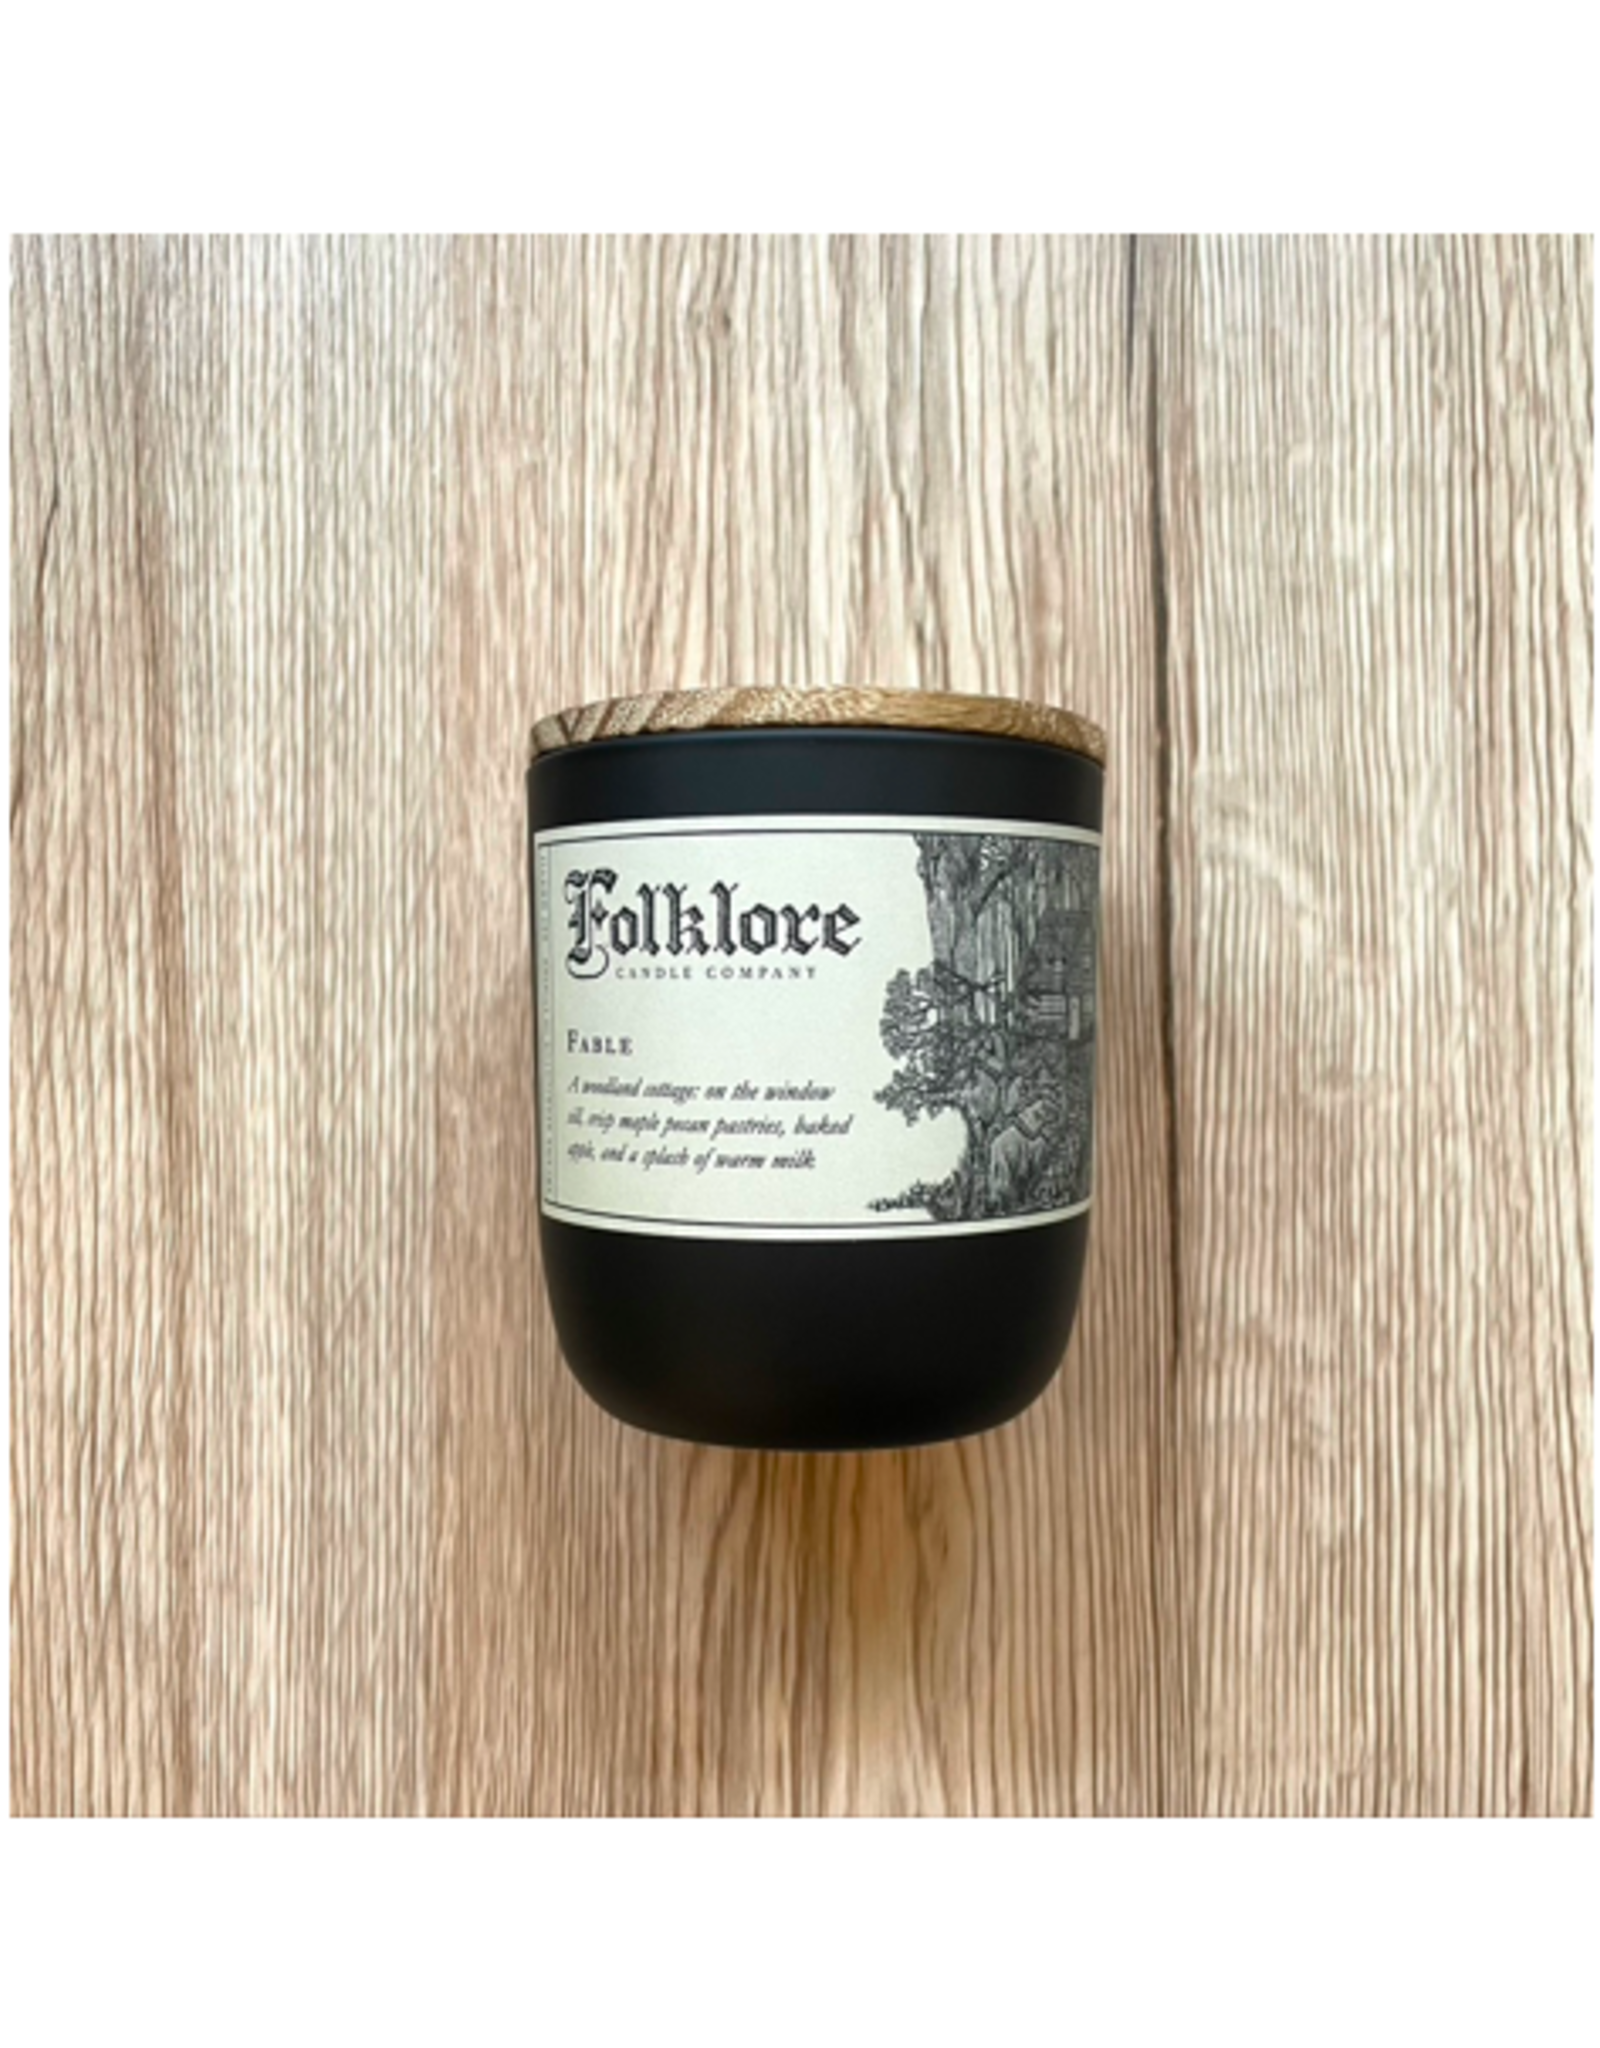 Folklore - Soy Candle/Fable, 10oz